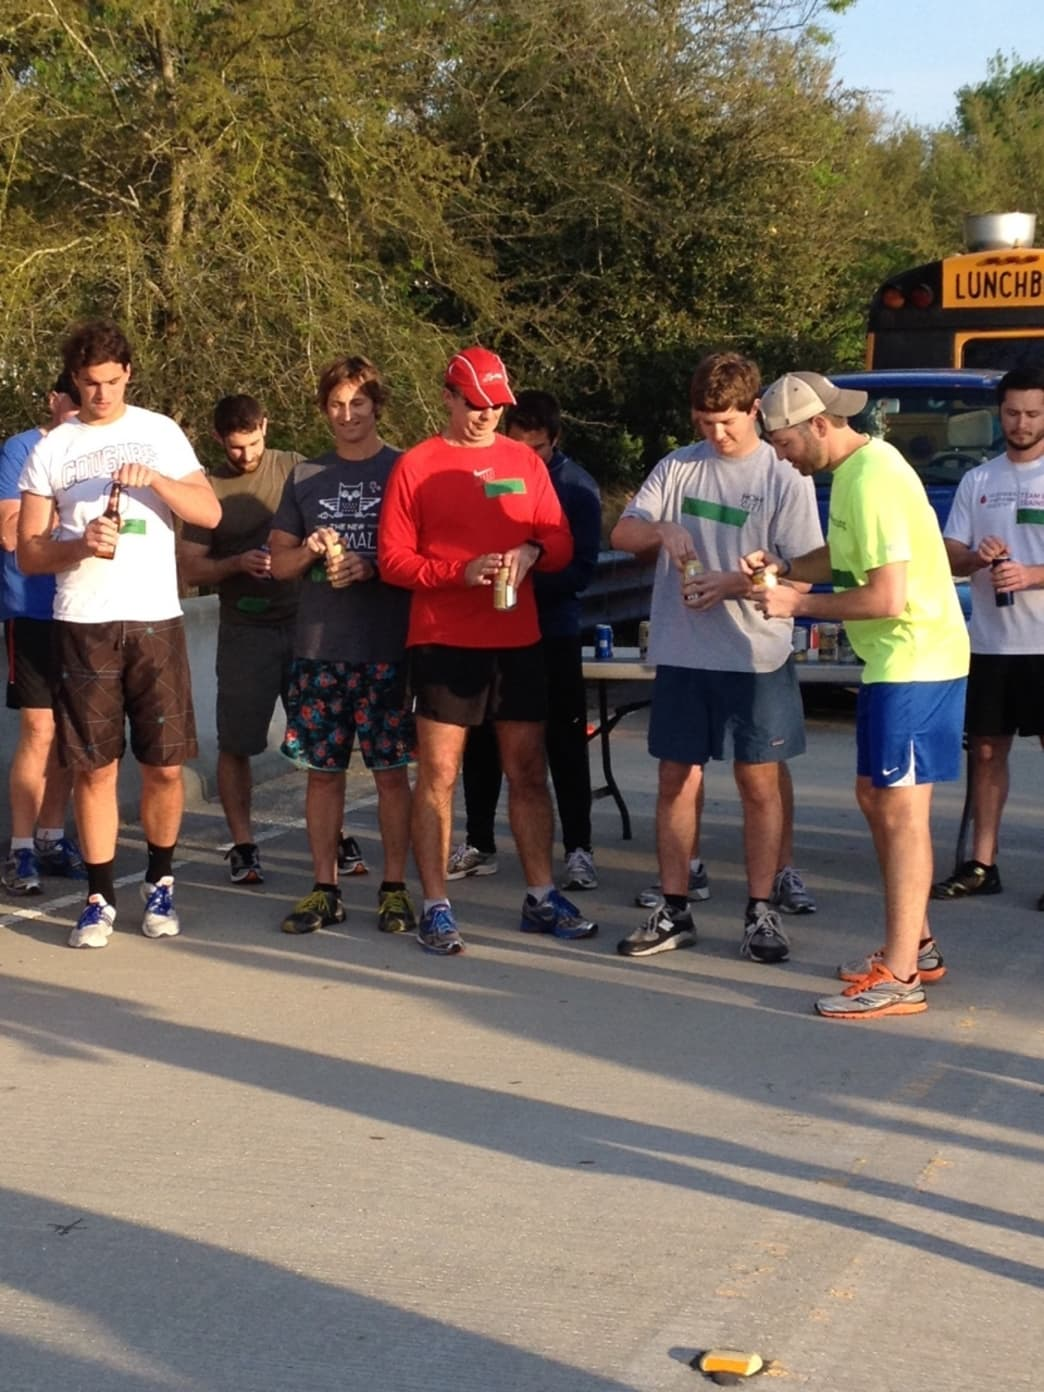 Racers prepare to chug at the Beer Mile hosted by Onshore Racing